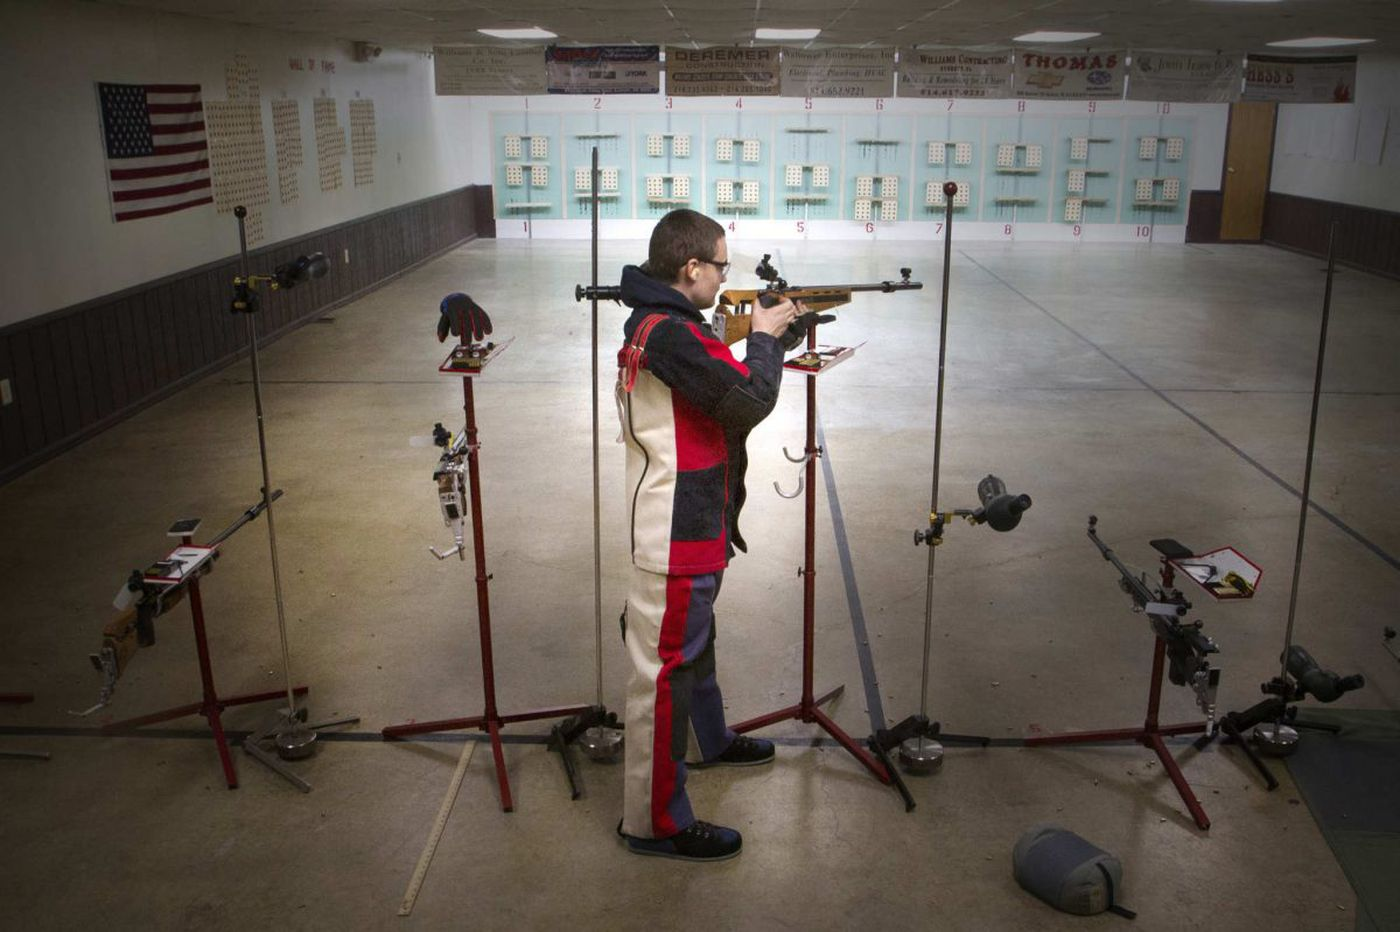 High school rifle teams take aim at scholarships, Olympics